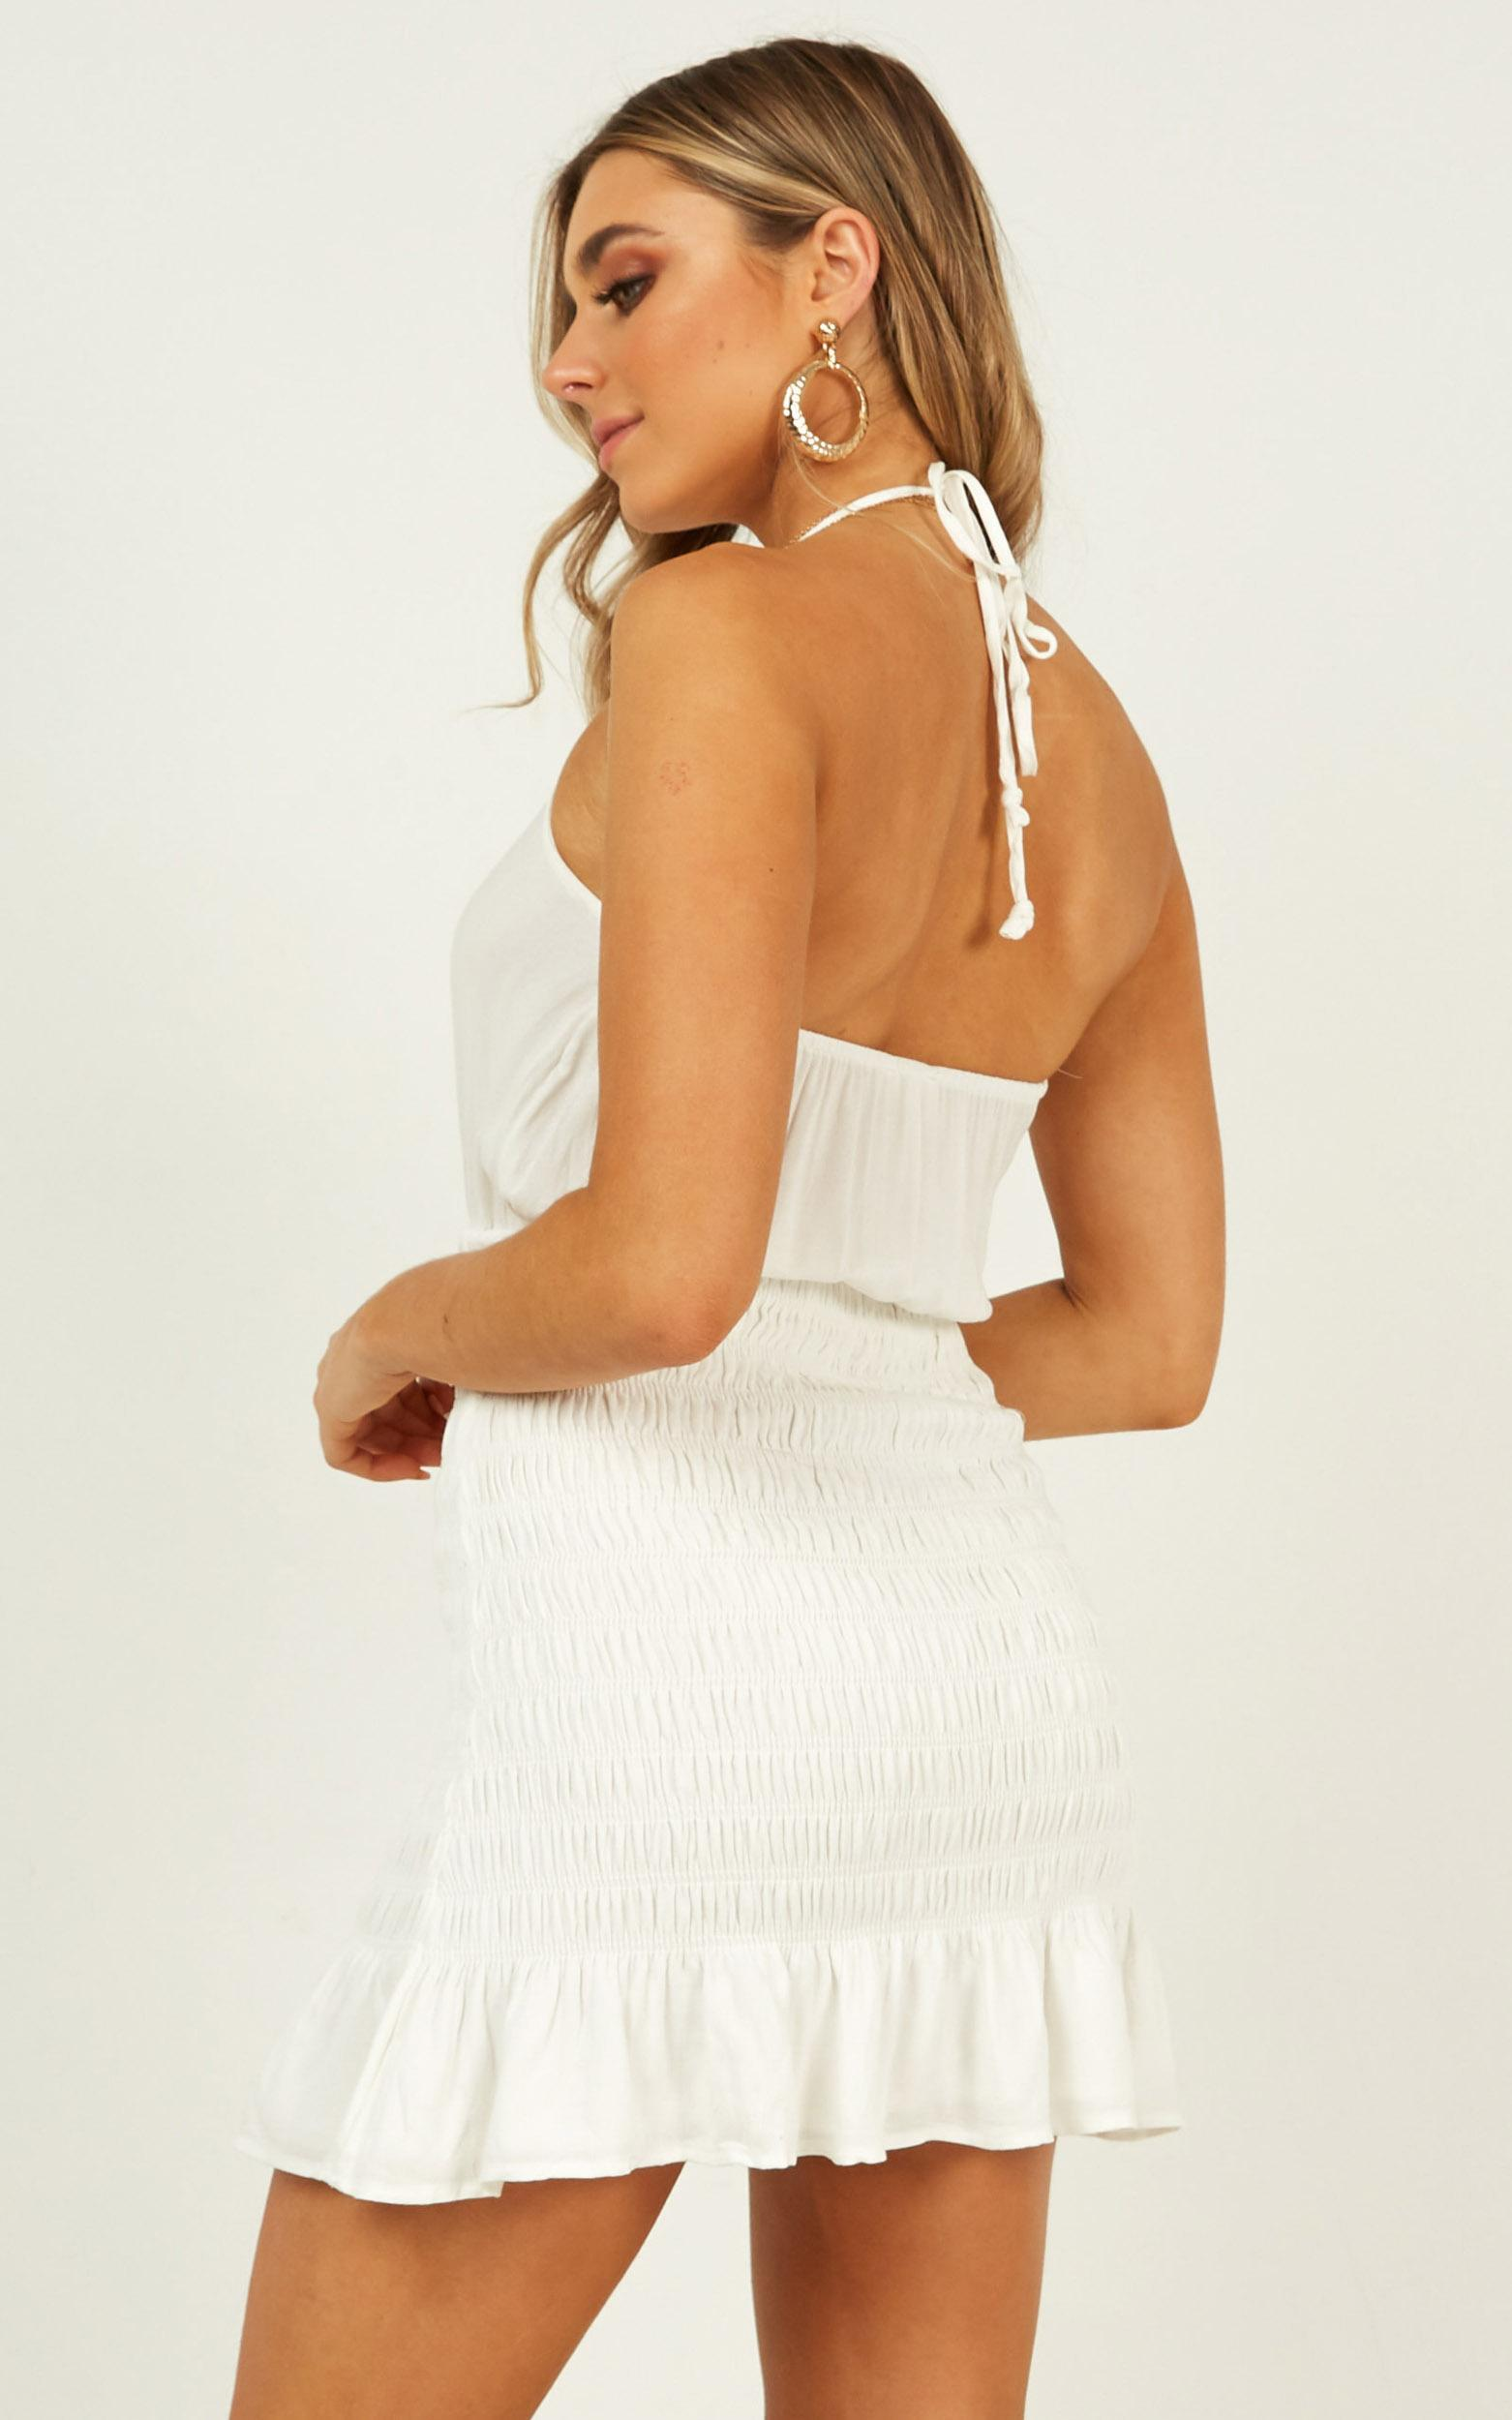 Pearl River dress in white - 12 (L), White, hi-res image number null